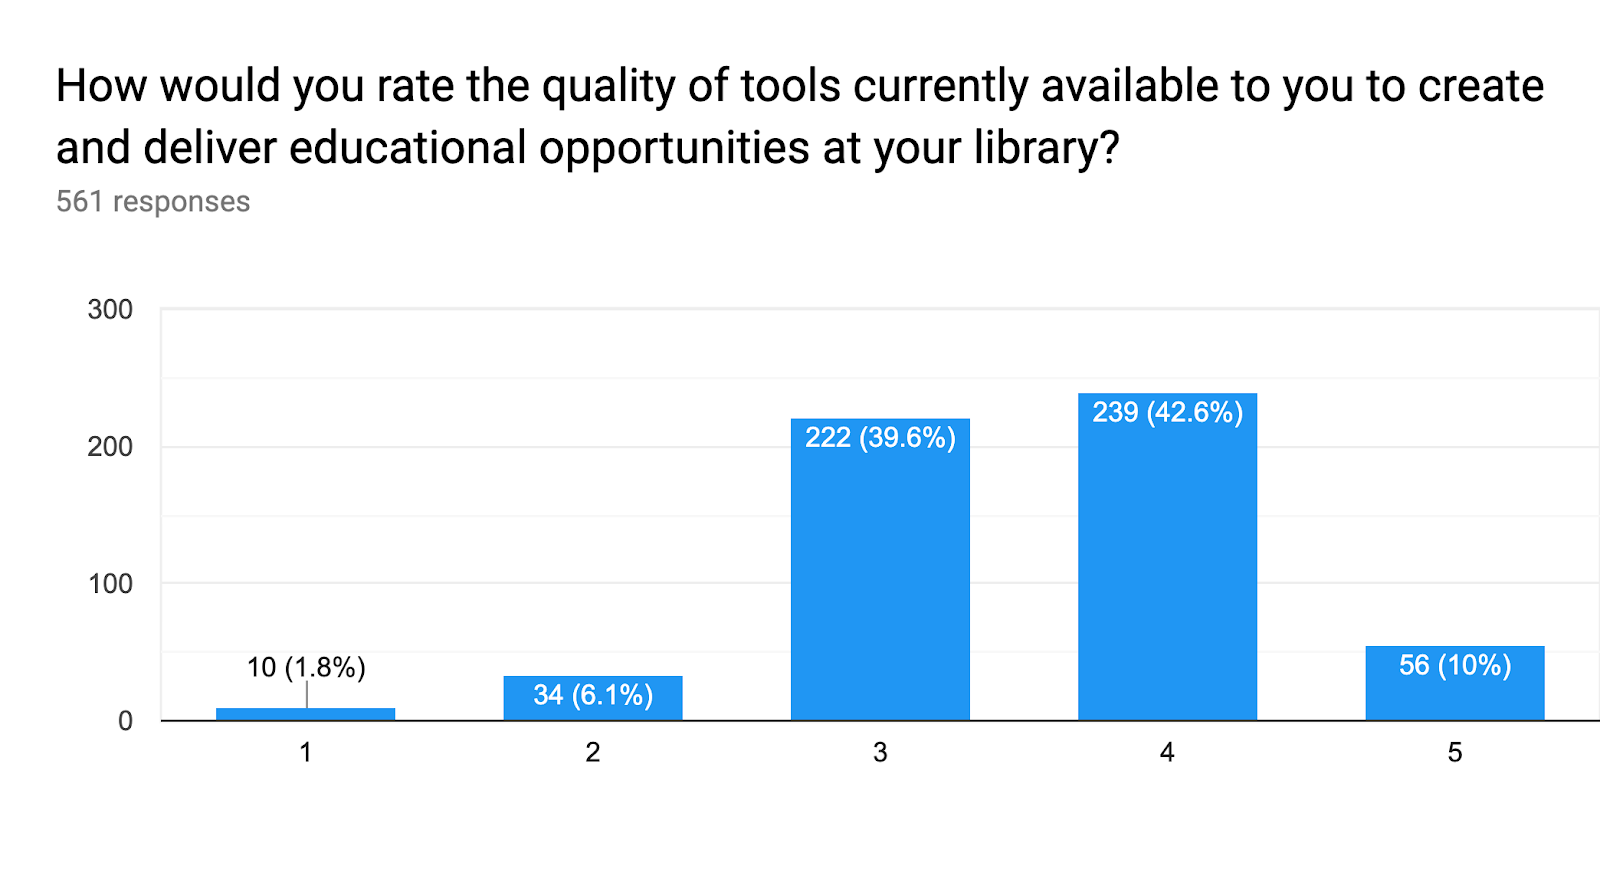 Forms response chart. Question title: How would you rate the quality of tools currently available to you to create and deliver educational opportunities at your library?. Number of responses: 561 responses.